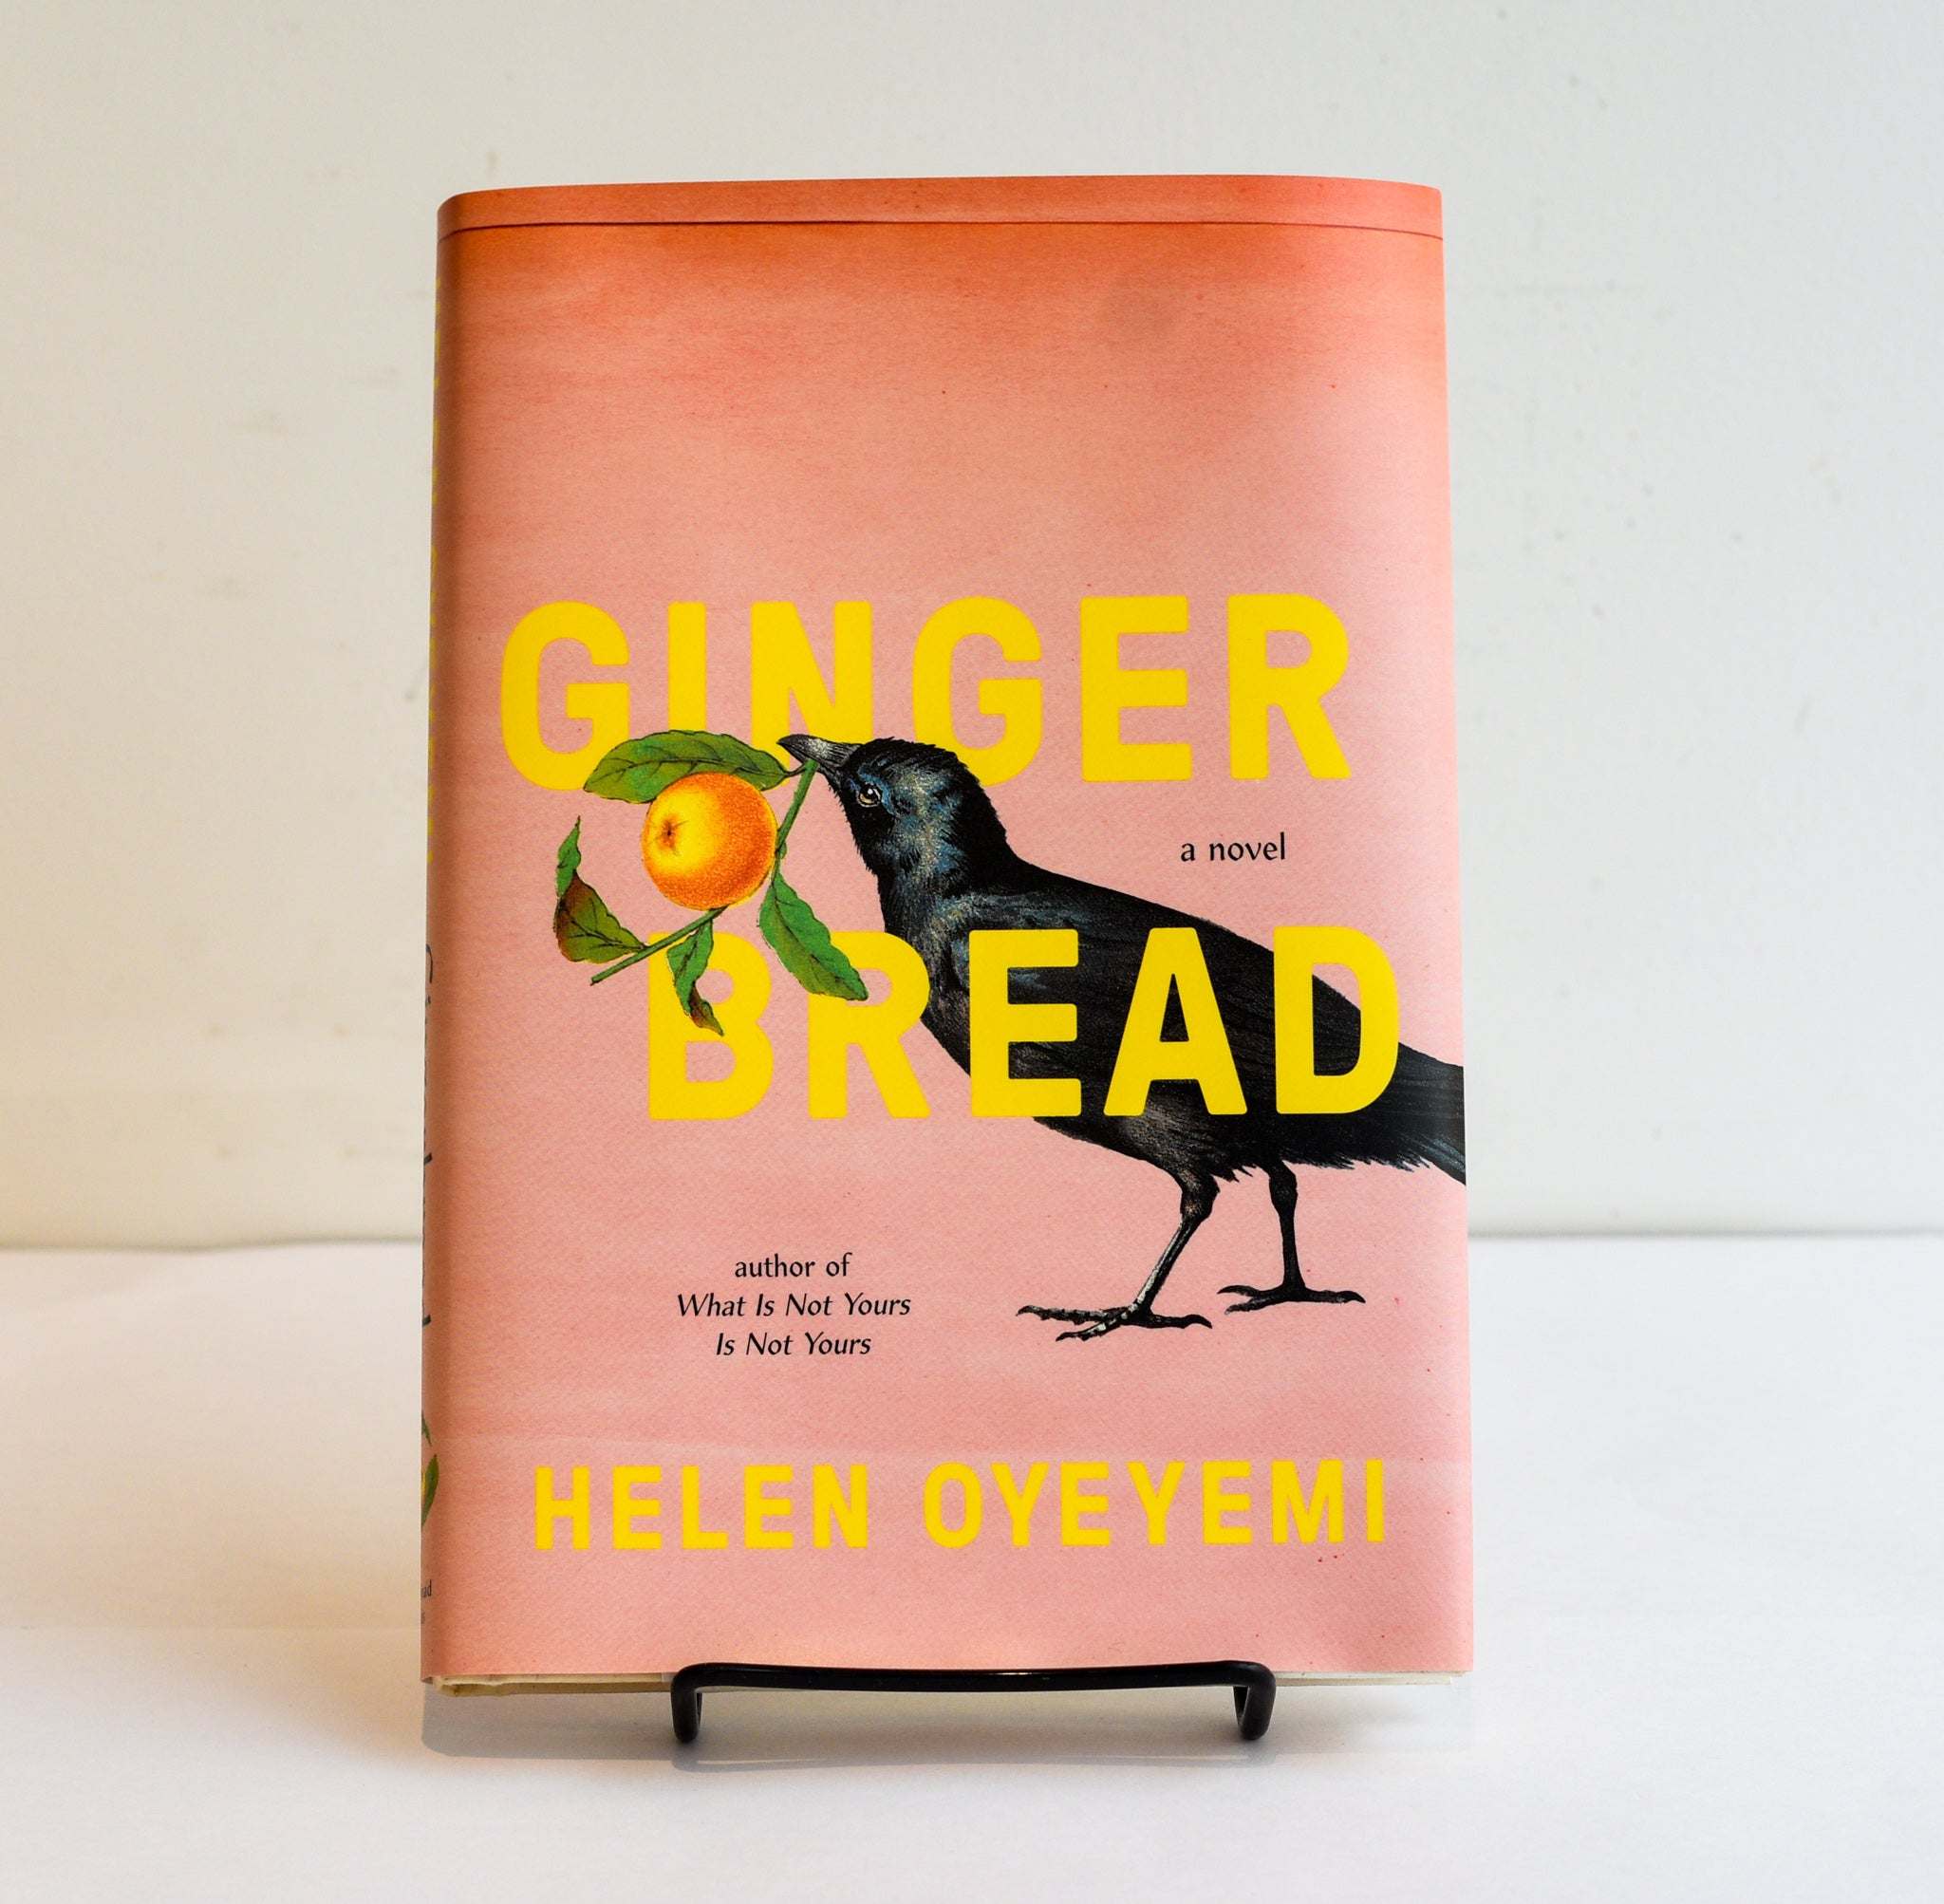 Gingerbread by Helen Oyeyemi (YA)